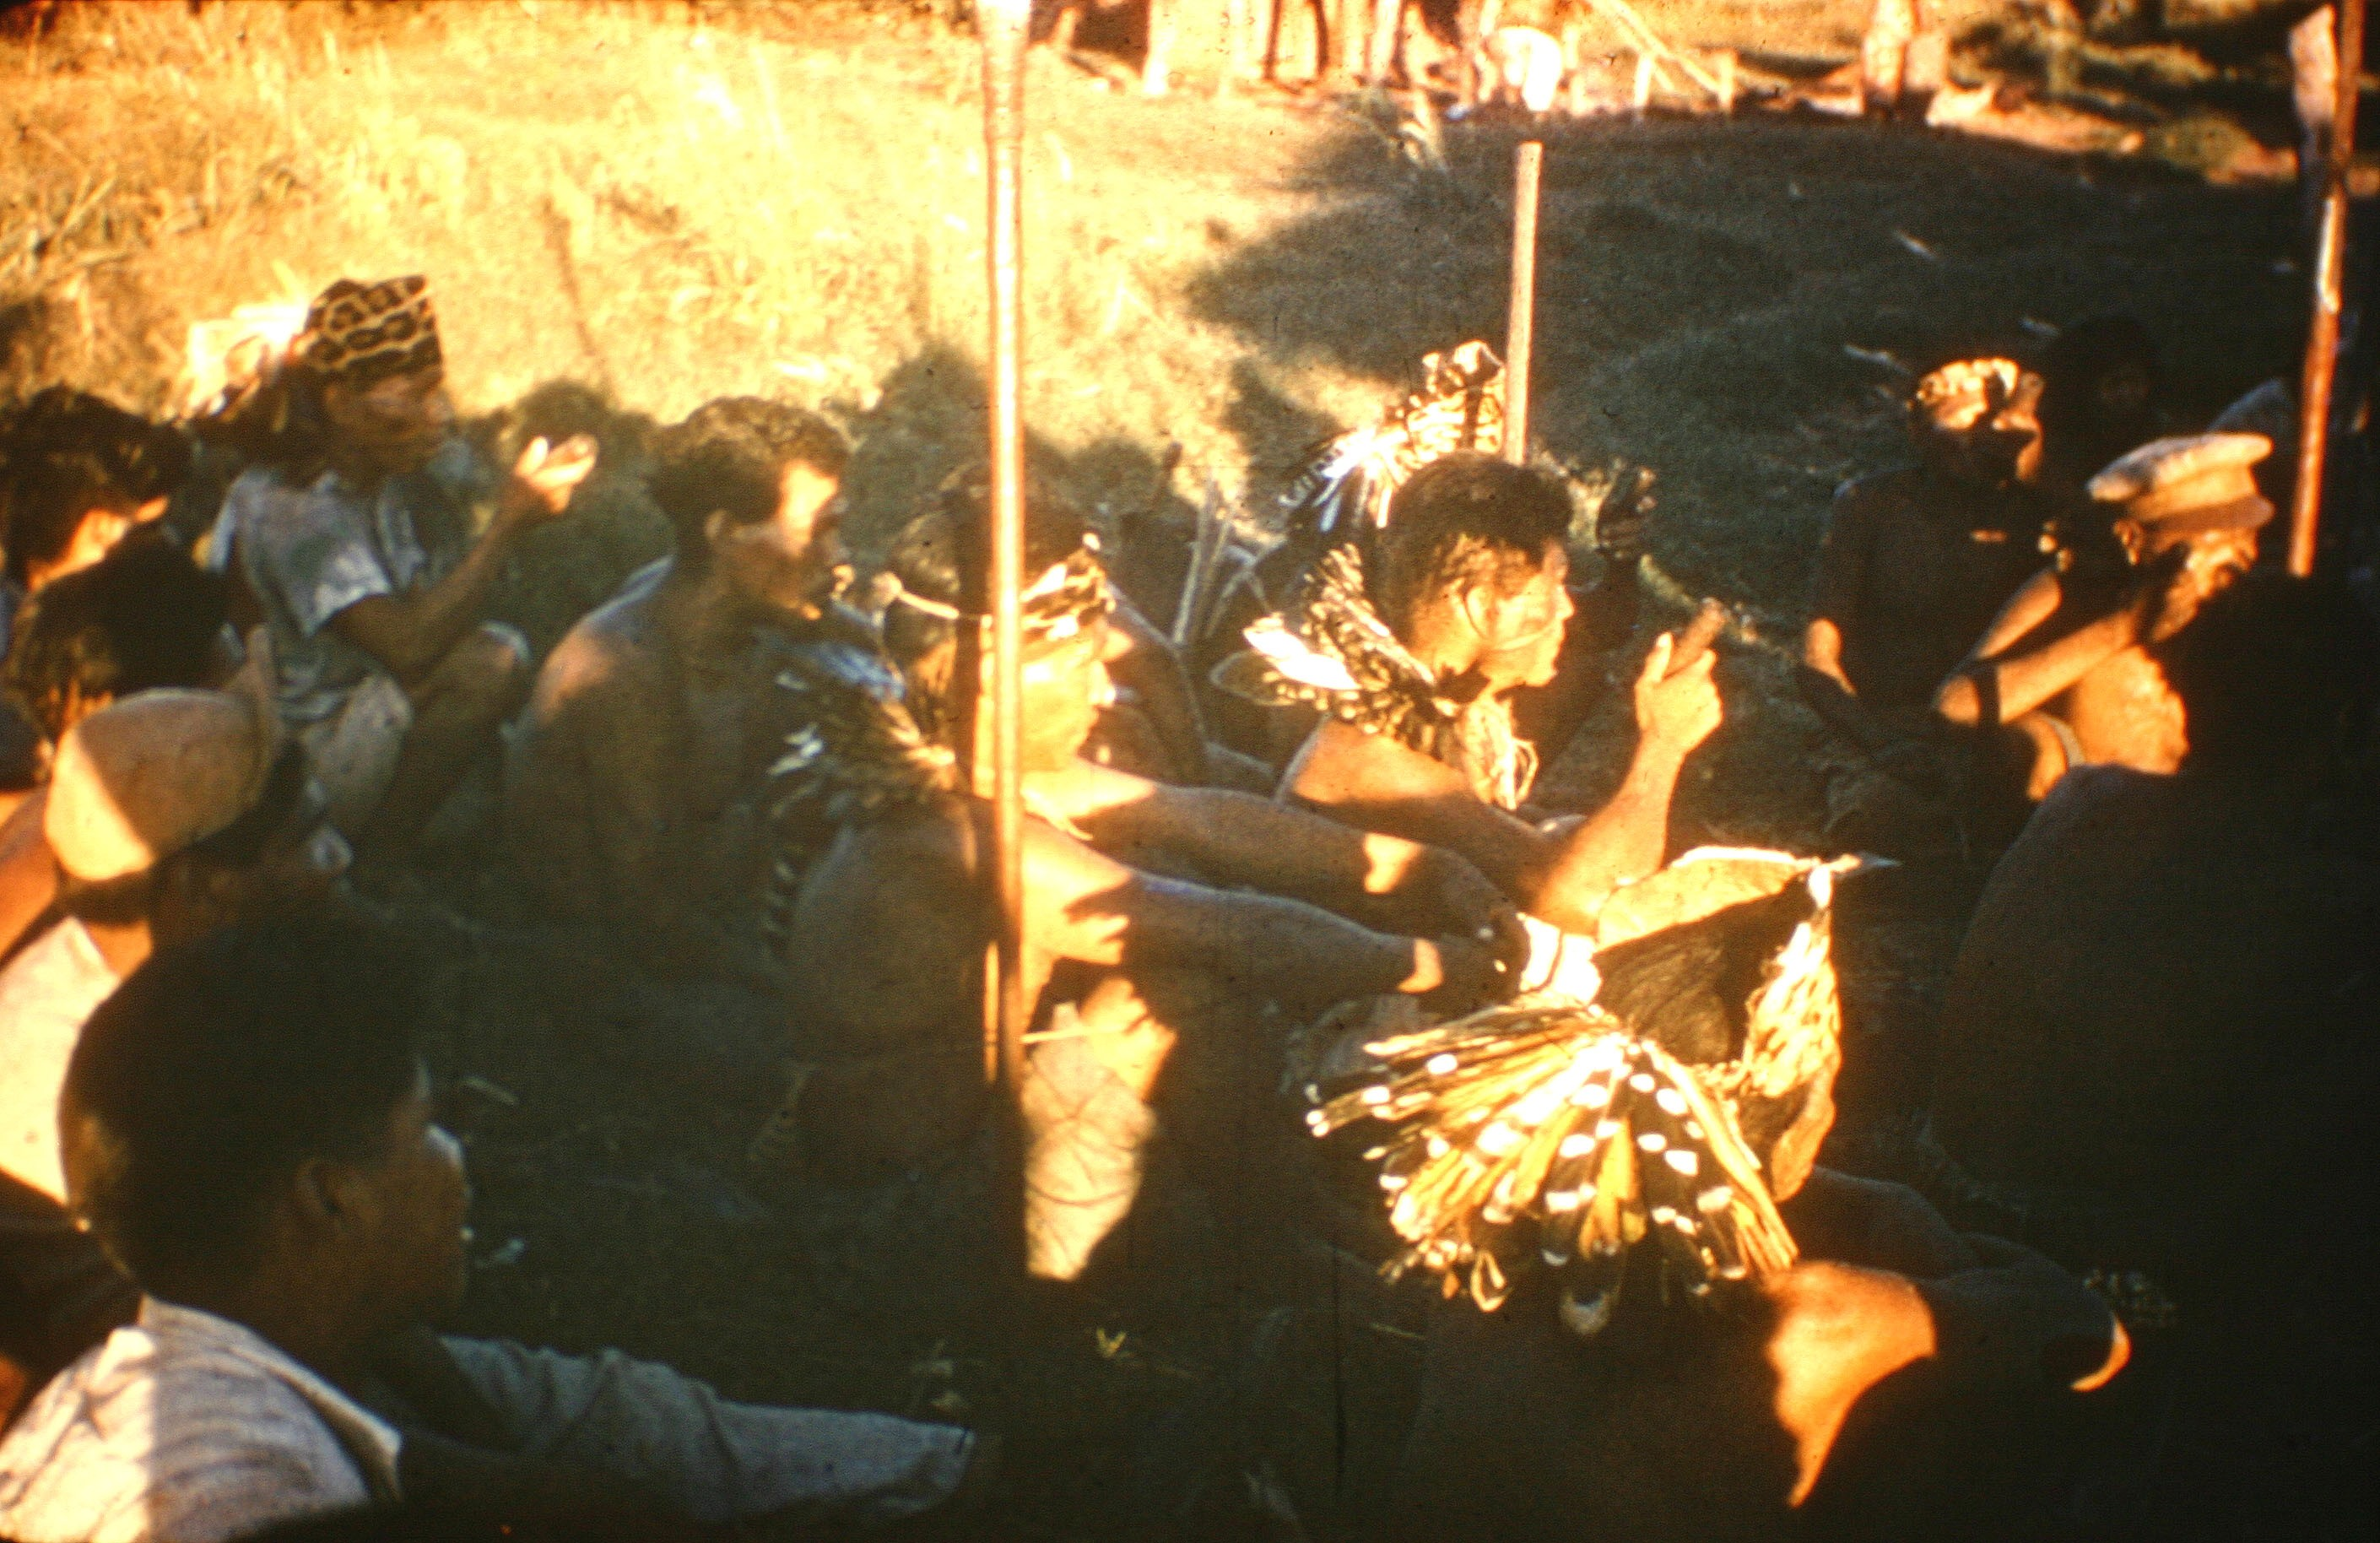 Ayore men 'pow-wowing' with pipes, headdresses, facial markings and lances.